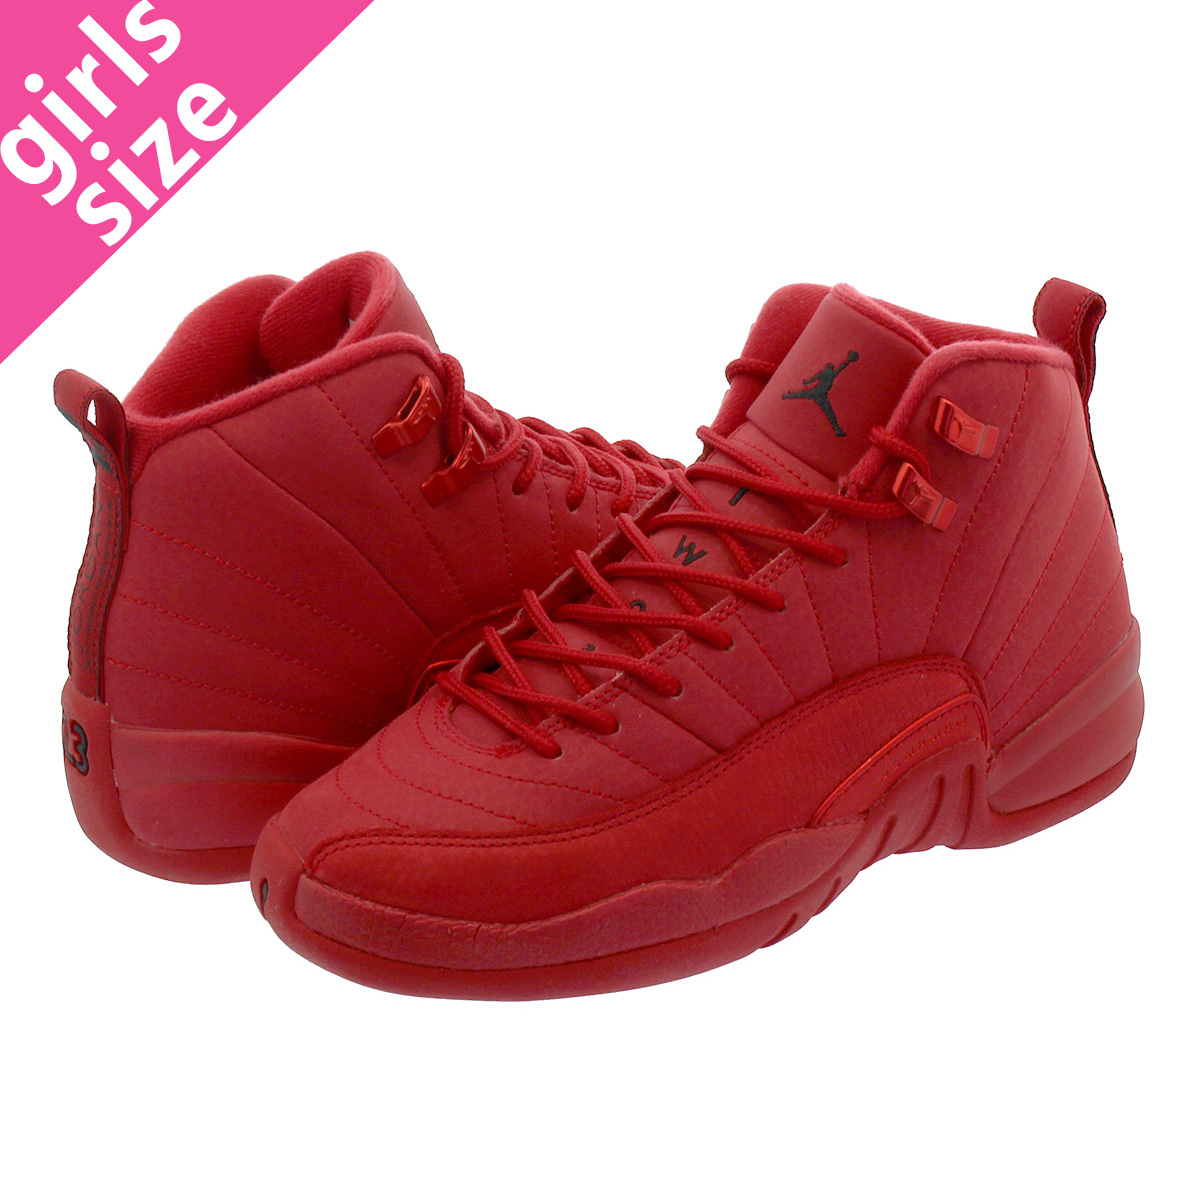 new style 9e7bc 157e6 NIKE AIR JORDAN 12 RETRO GS Nike Air Jordan 12 nostalgic GS GYM RED/BLACK  153,265-601